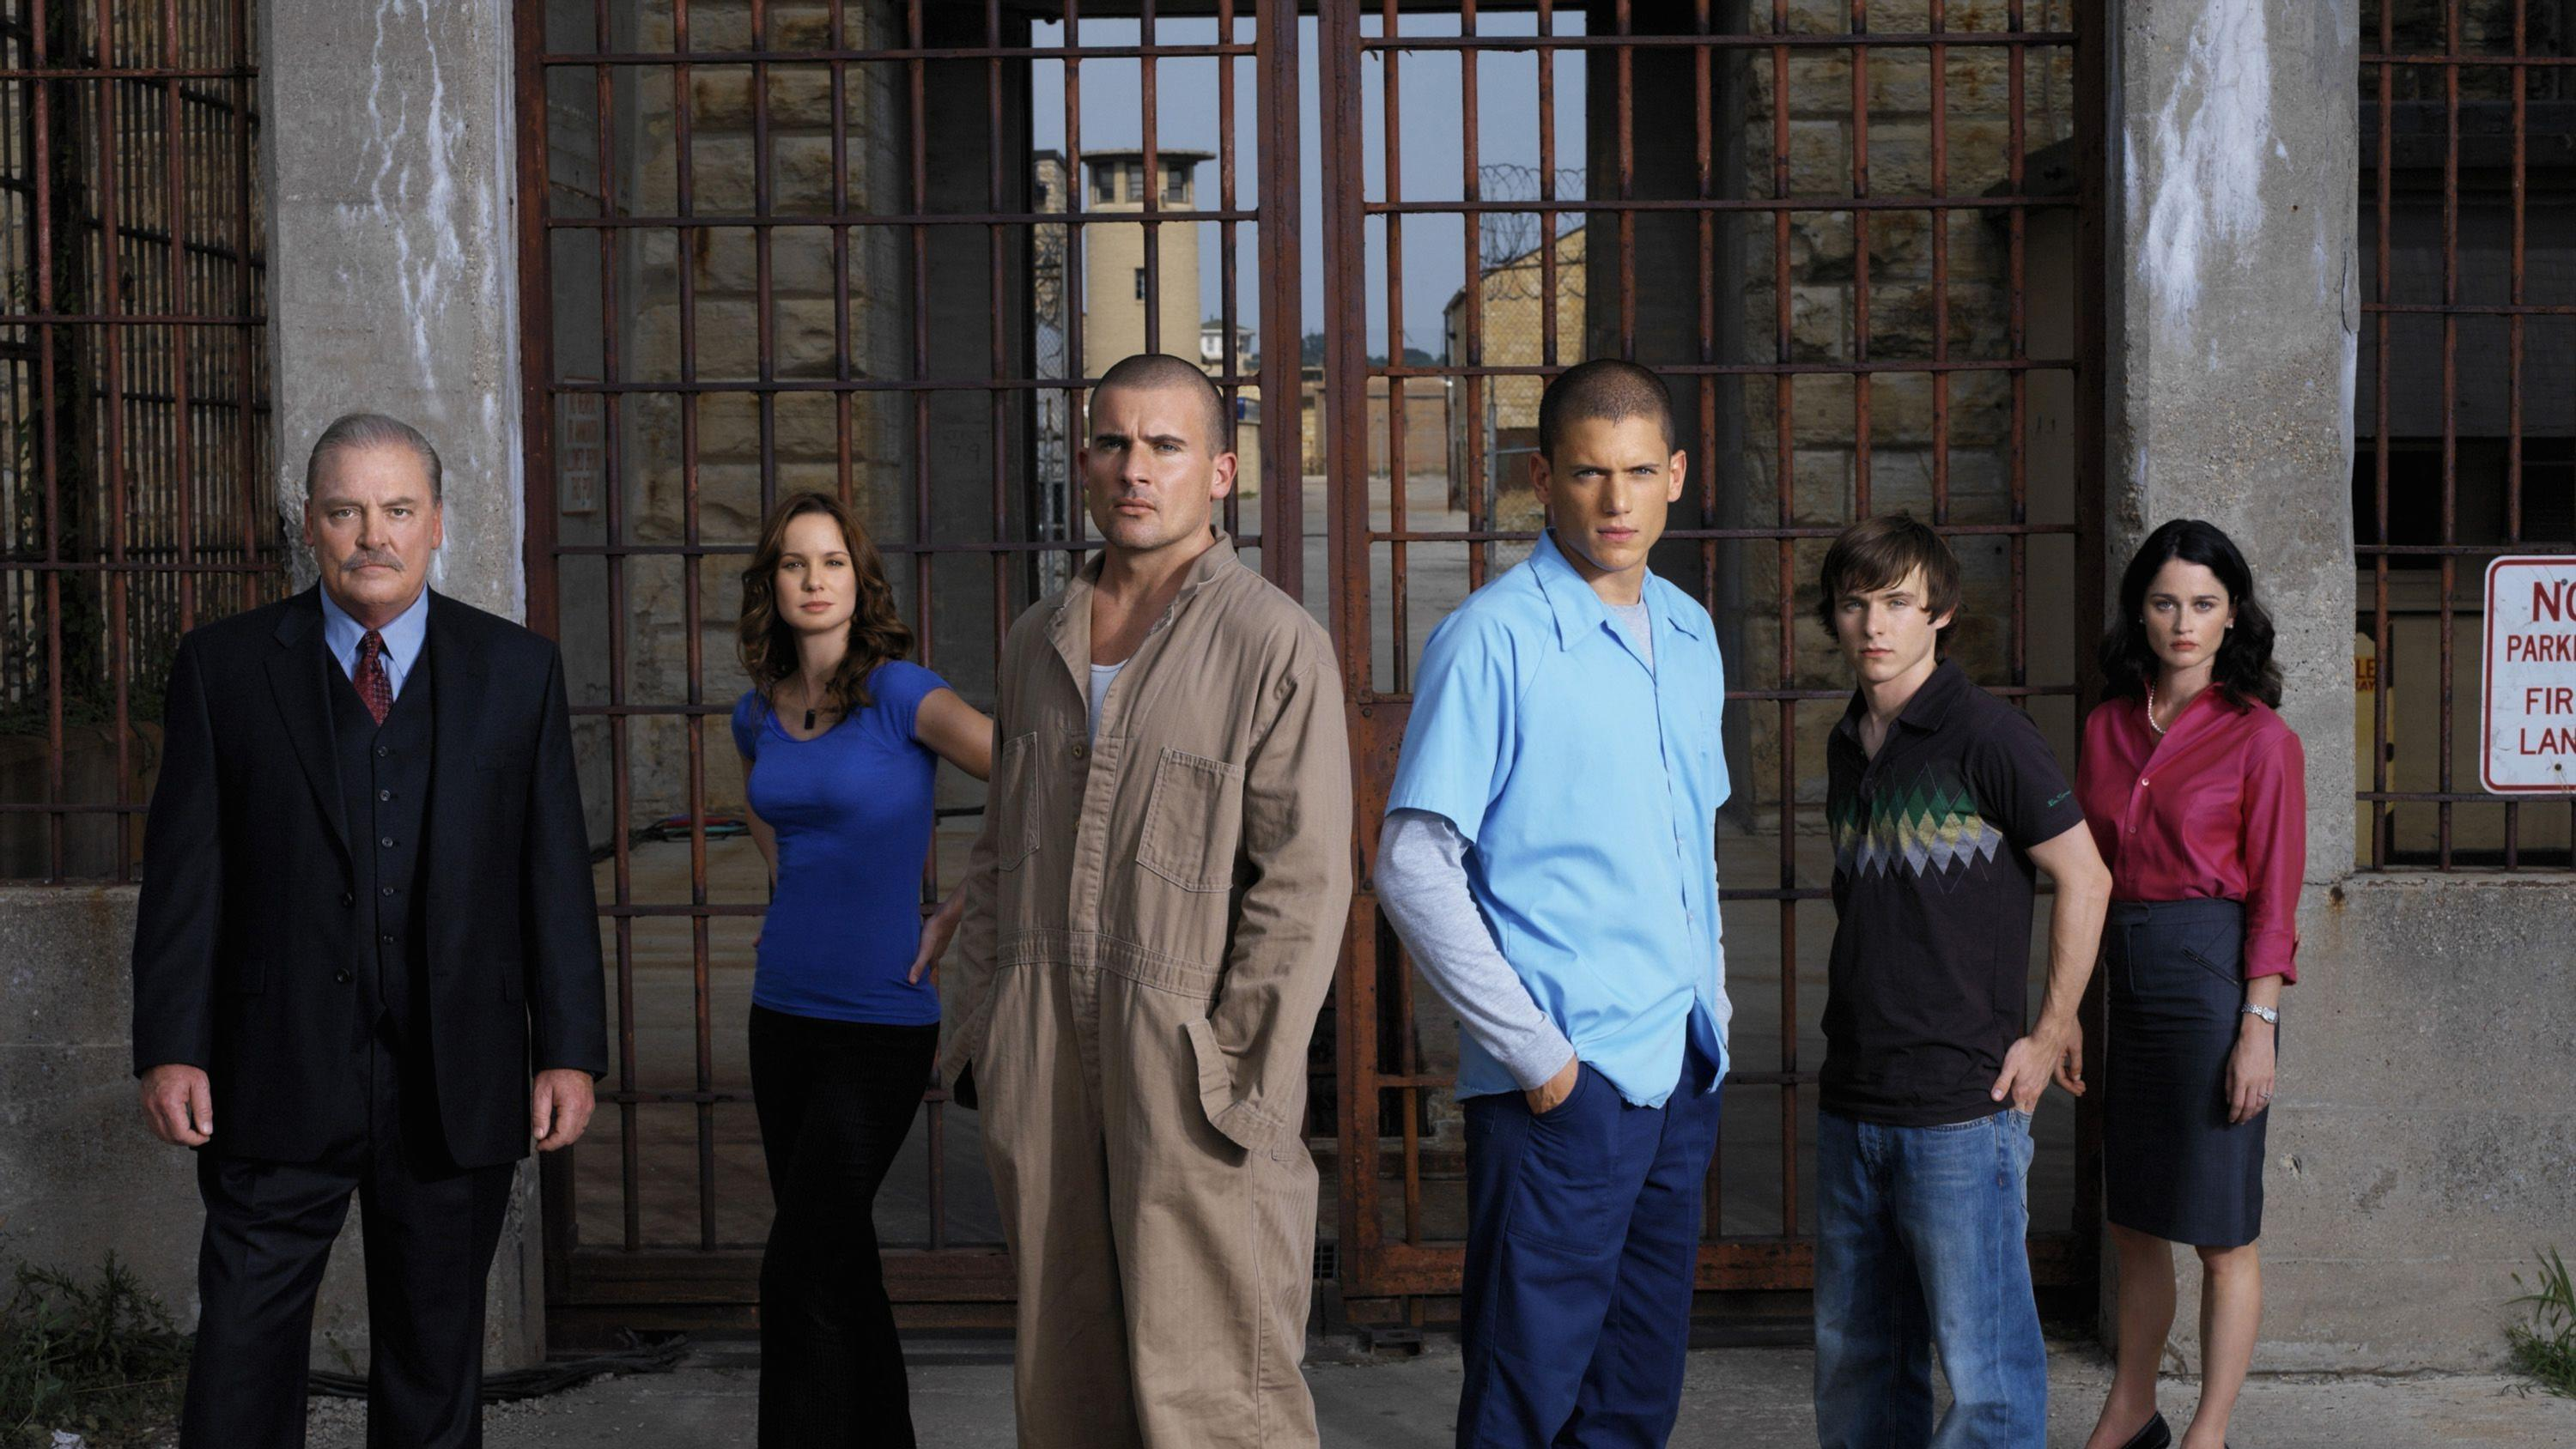 (v.li.) Warden Henry Pope (Stacy Keach), Dr. Sara Tancredi (Sarah Wayne Callies), Lincoln Burrows (Dominic Purcell), Micheal Scofield (Wentworth Miller), LJ Burrows (Marshall Allman), Veronica Donovan (Robin Tunney).